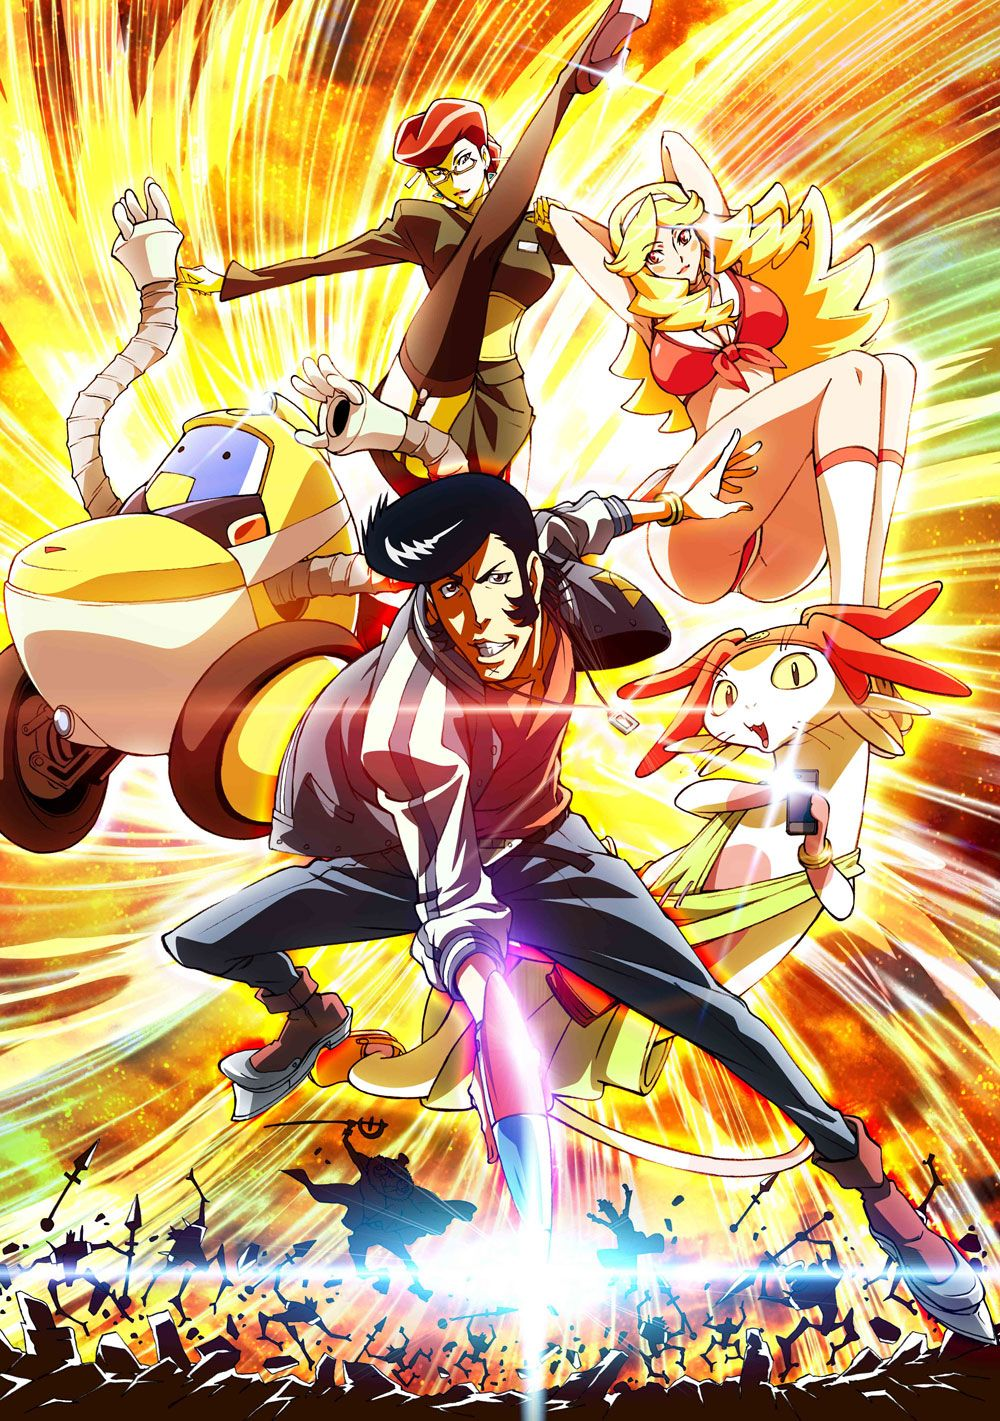 Space Dandy Key Visual Séries anime, Dandy, Anime